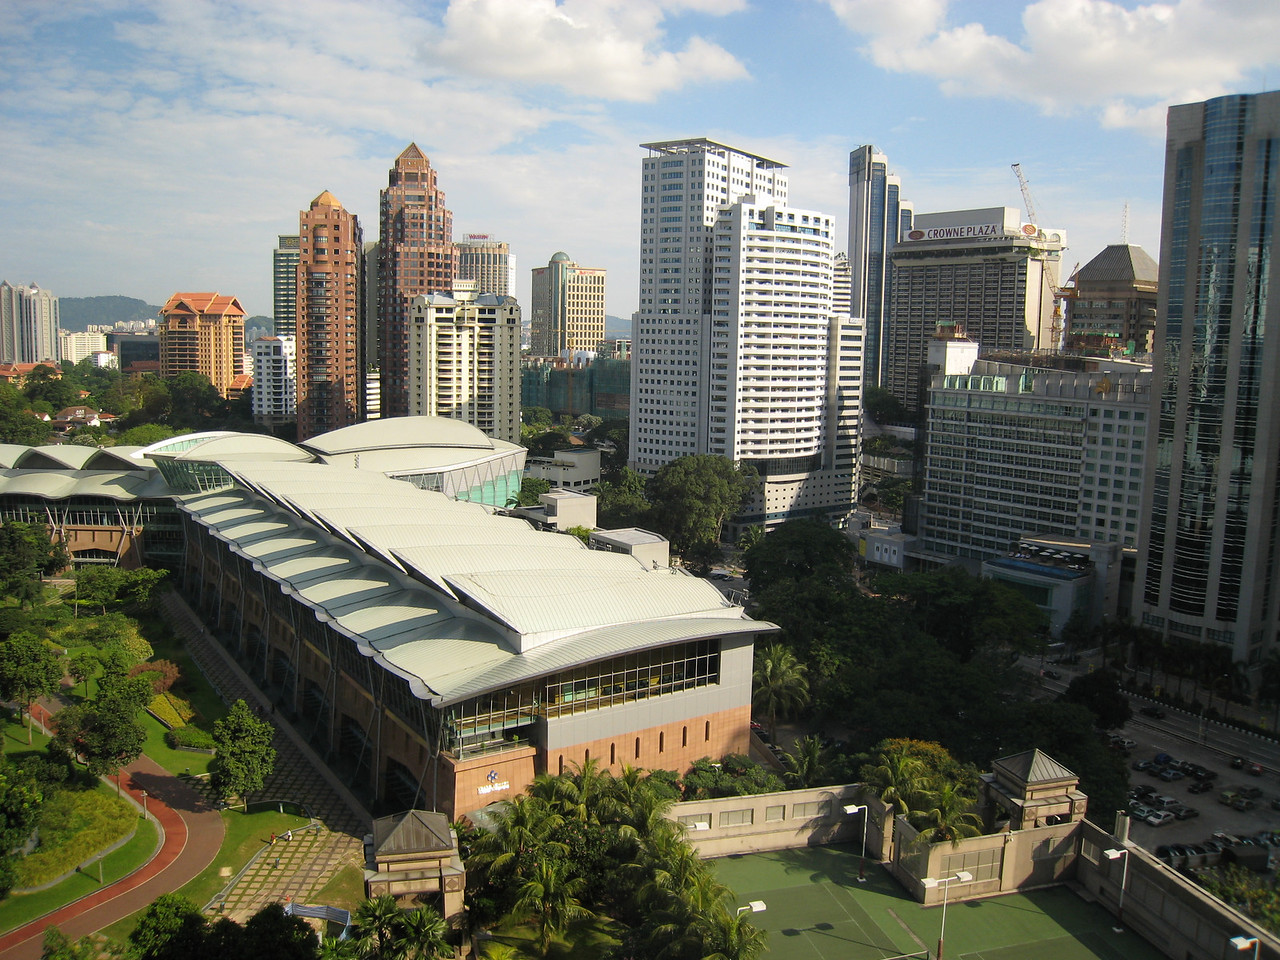 The convention centre built up right next to the park and the Petronas towers